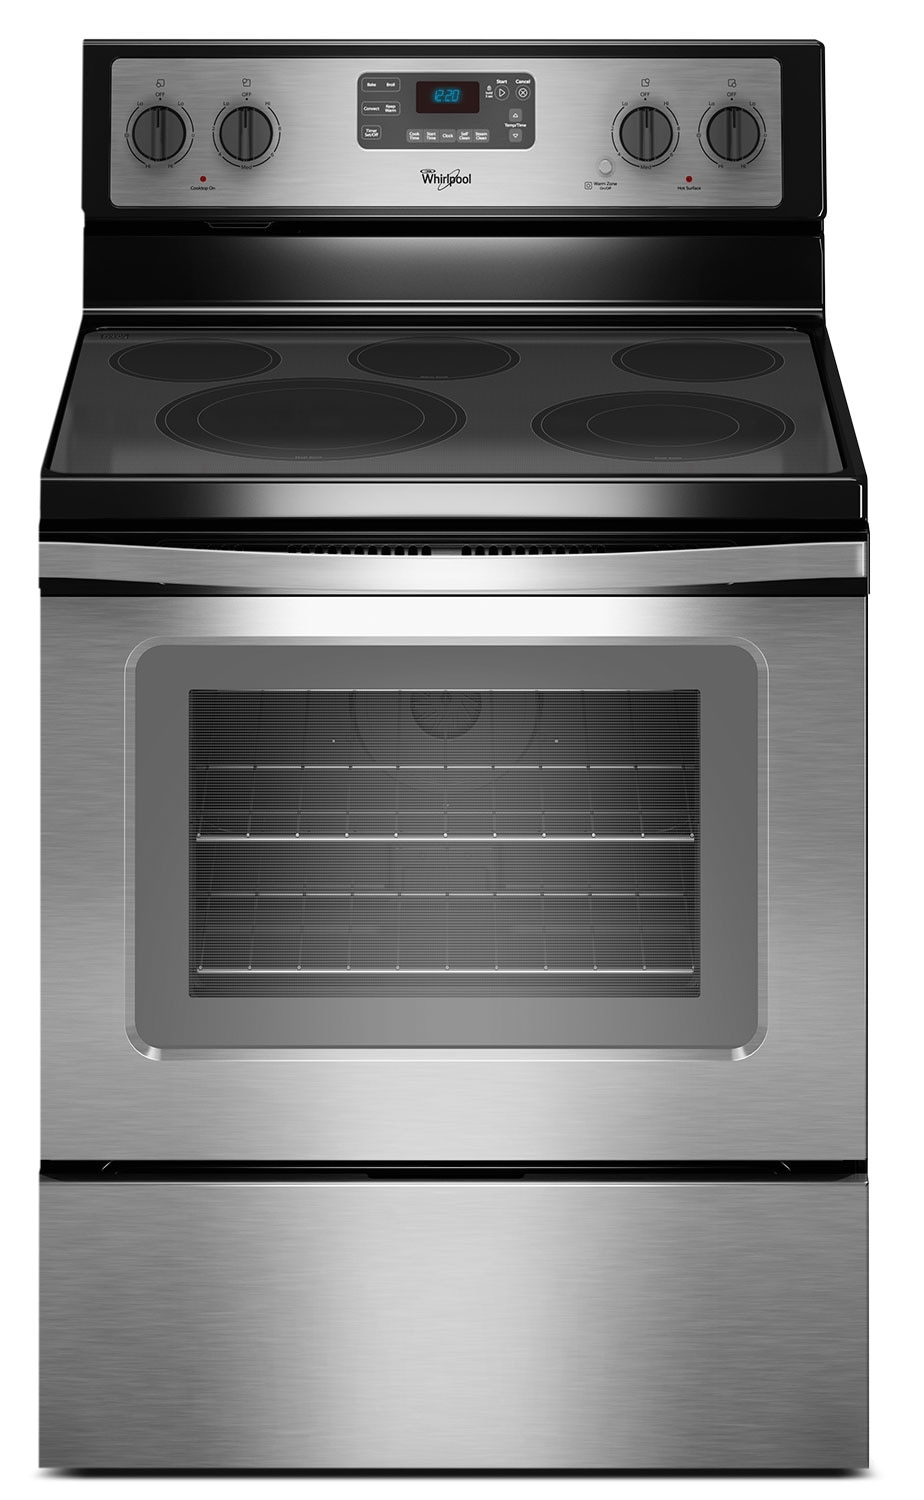 Whirlpool 5.3 Cu. Ft. Free-Standing Electric Range - Stainless Steel